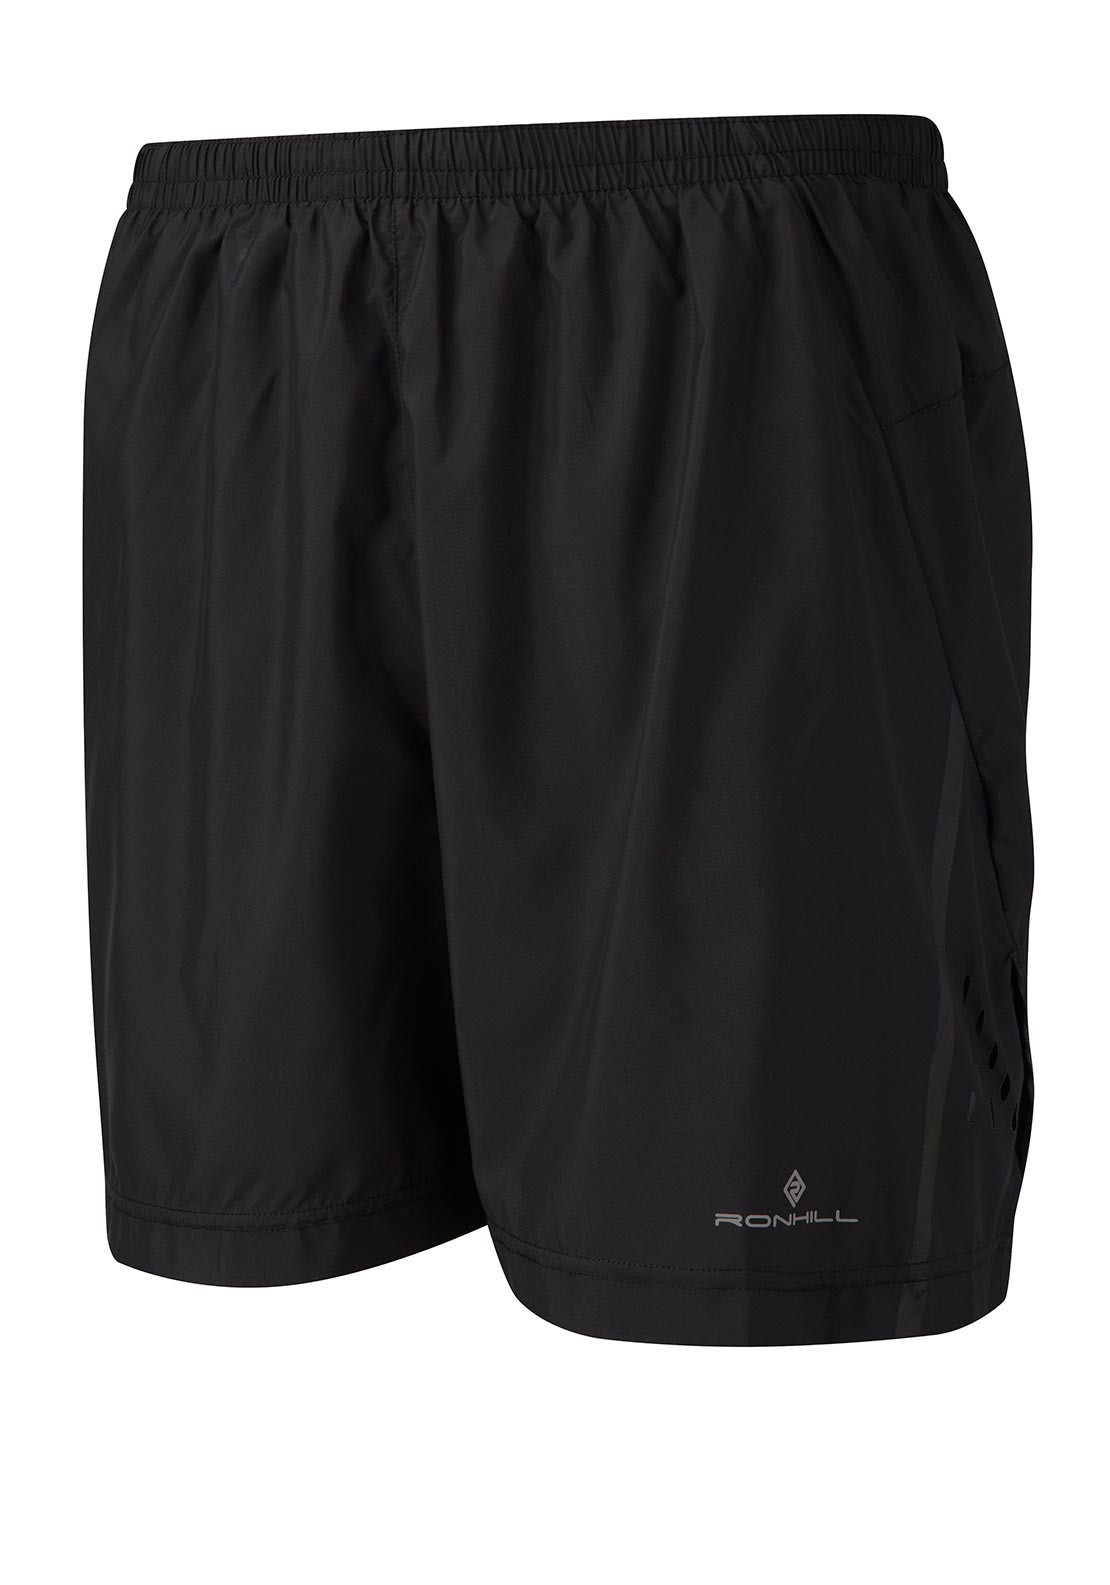 "Ronhill Womens Advance 5"" Short, Black"